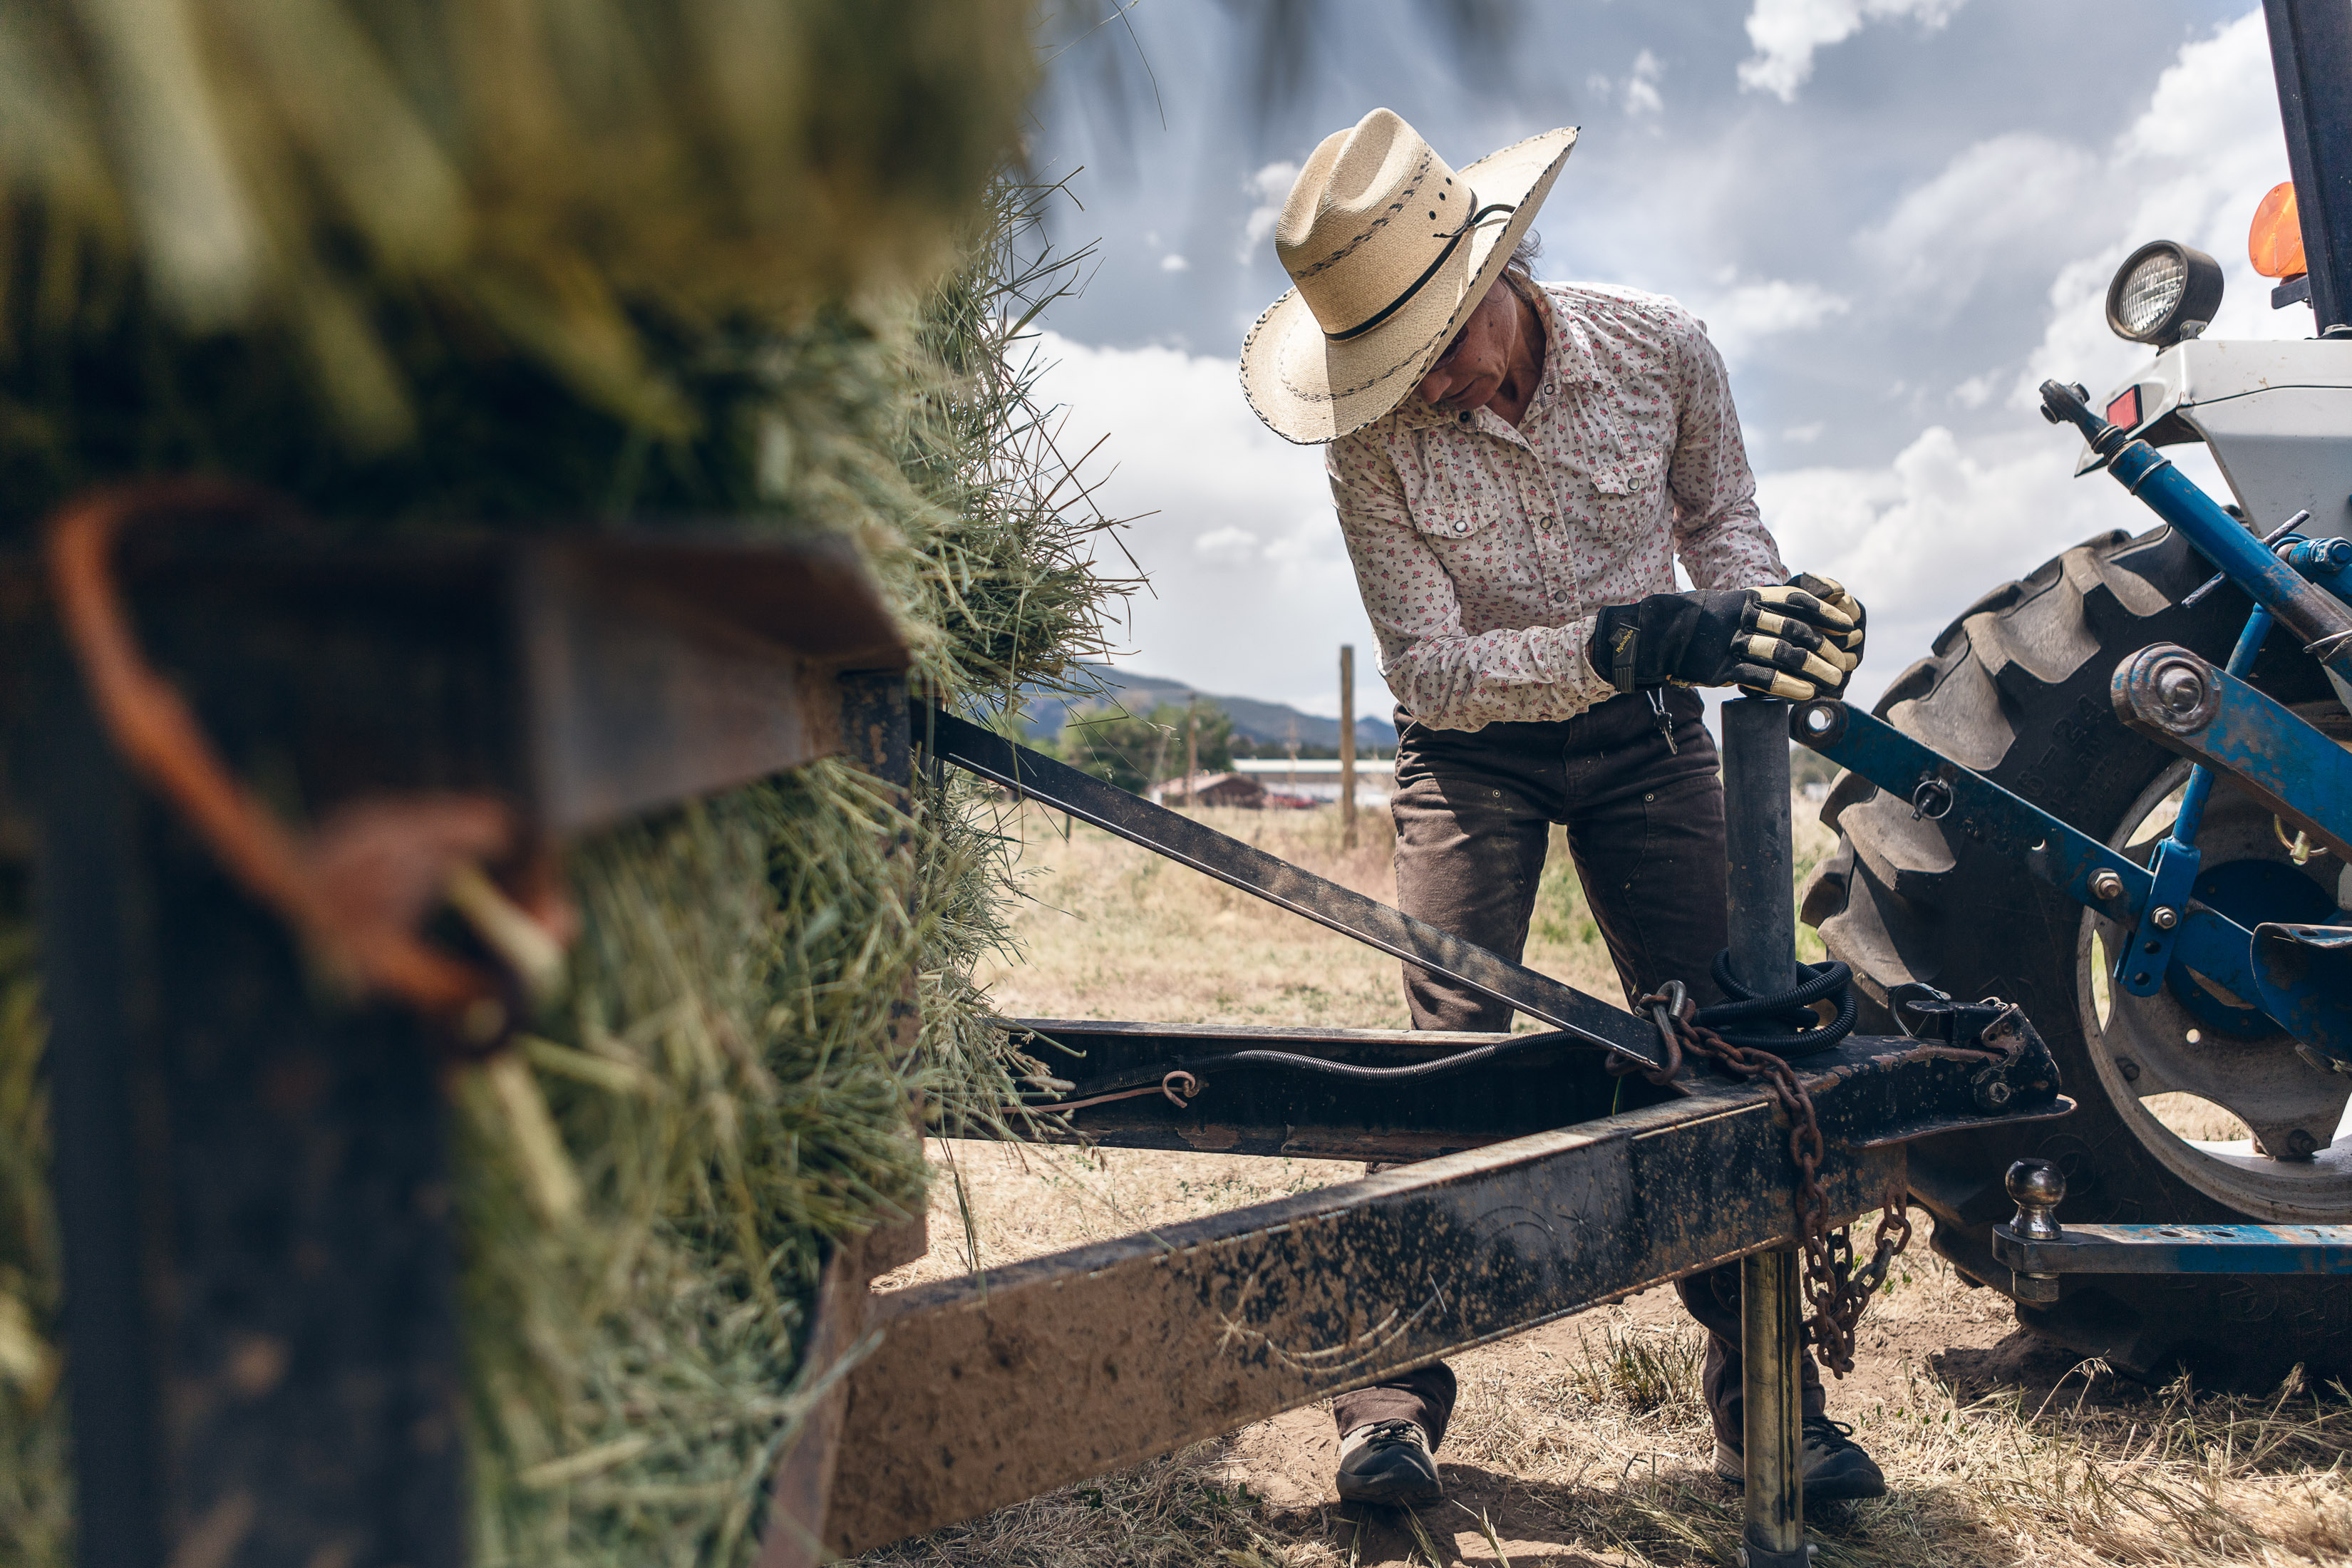 A woman hooks up a trailer for bailing hay on a hay farm in Howard, Colorado